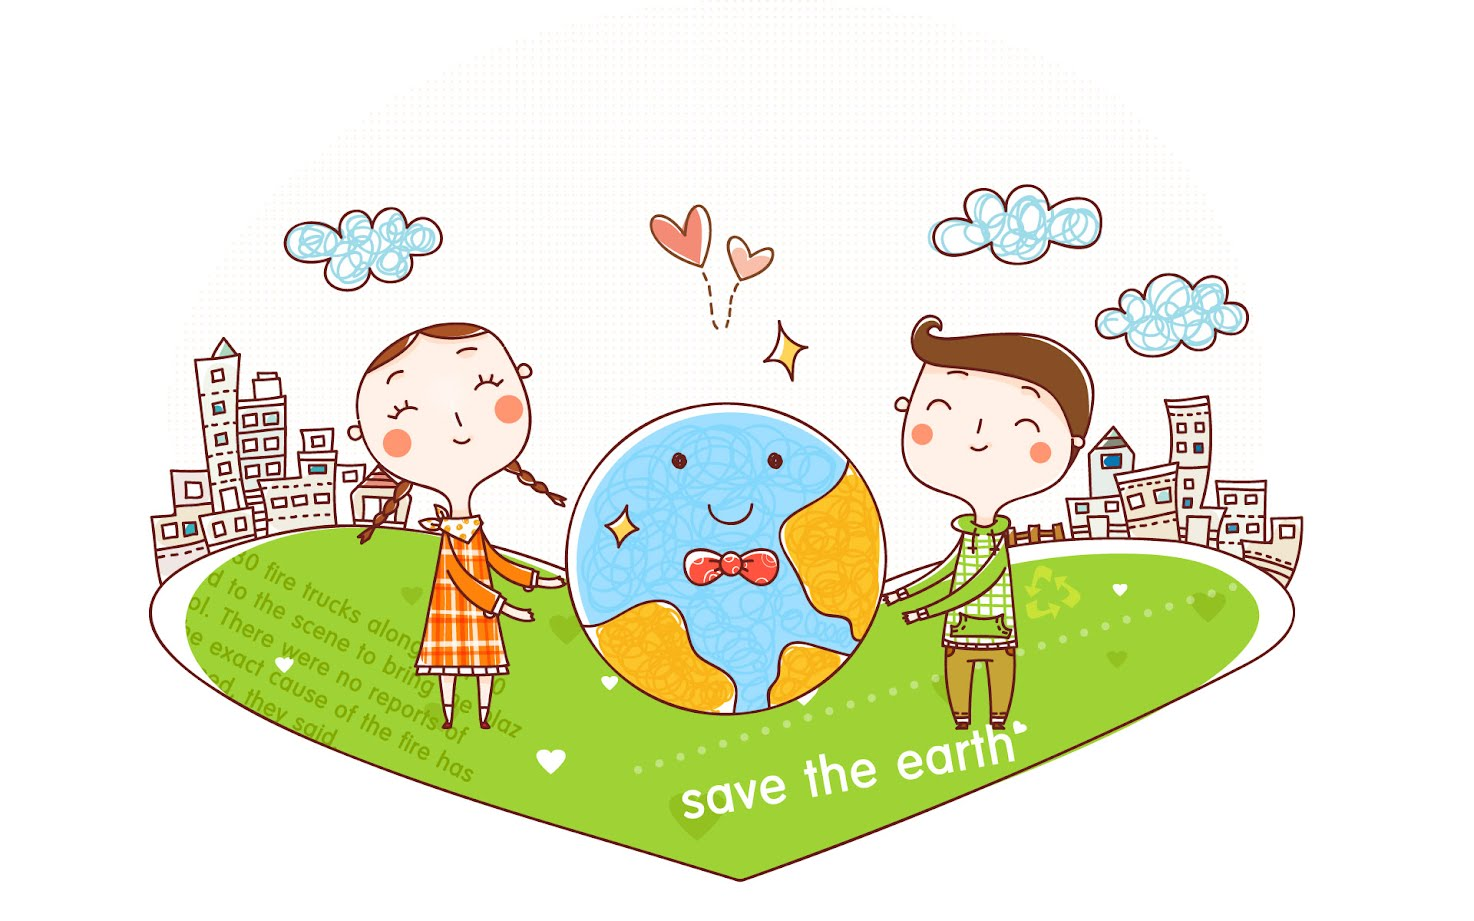 an analysis of the saving our fellow earthlings Avoiding meat and dairy is 'single biggest way' to reduce your impact on earth biggest analysis to date reveals huge footprint of livestock - it provides just 18% of calories but takes up 83%.